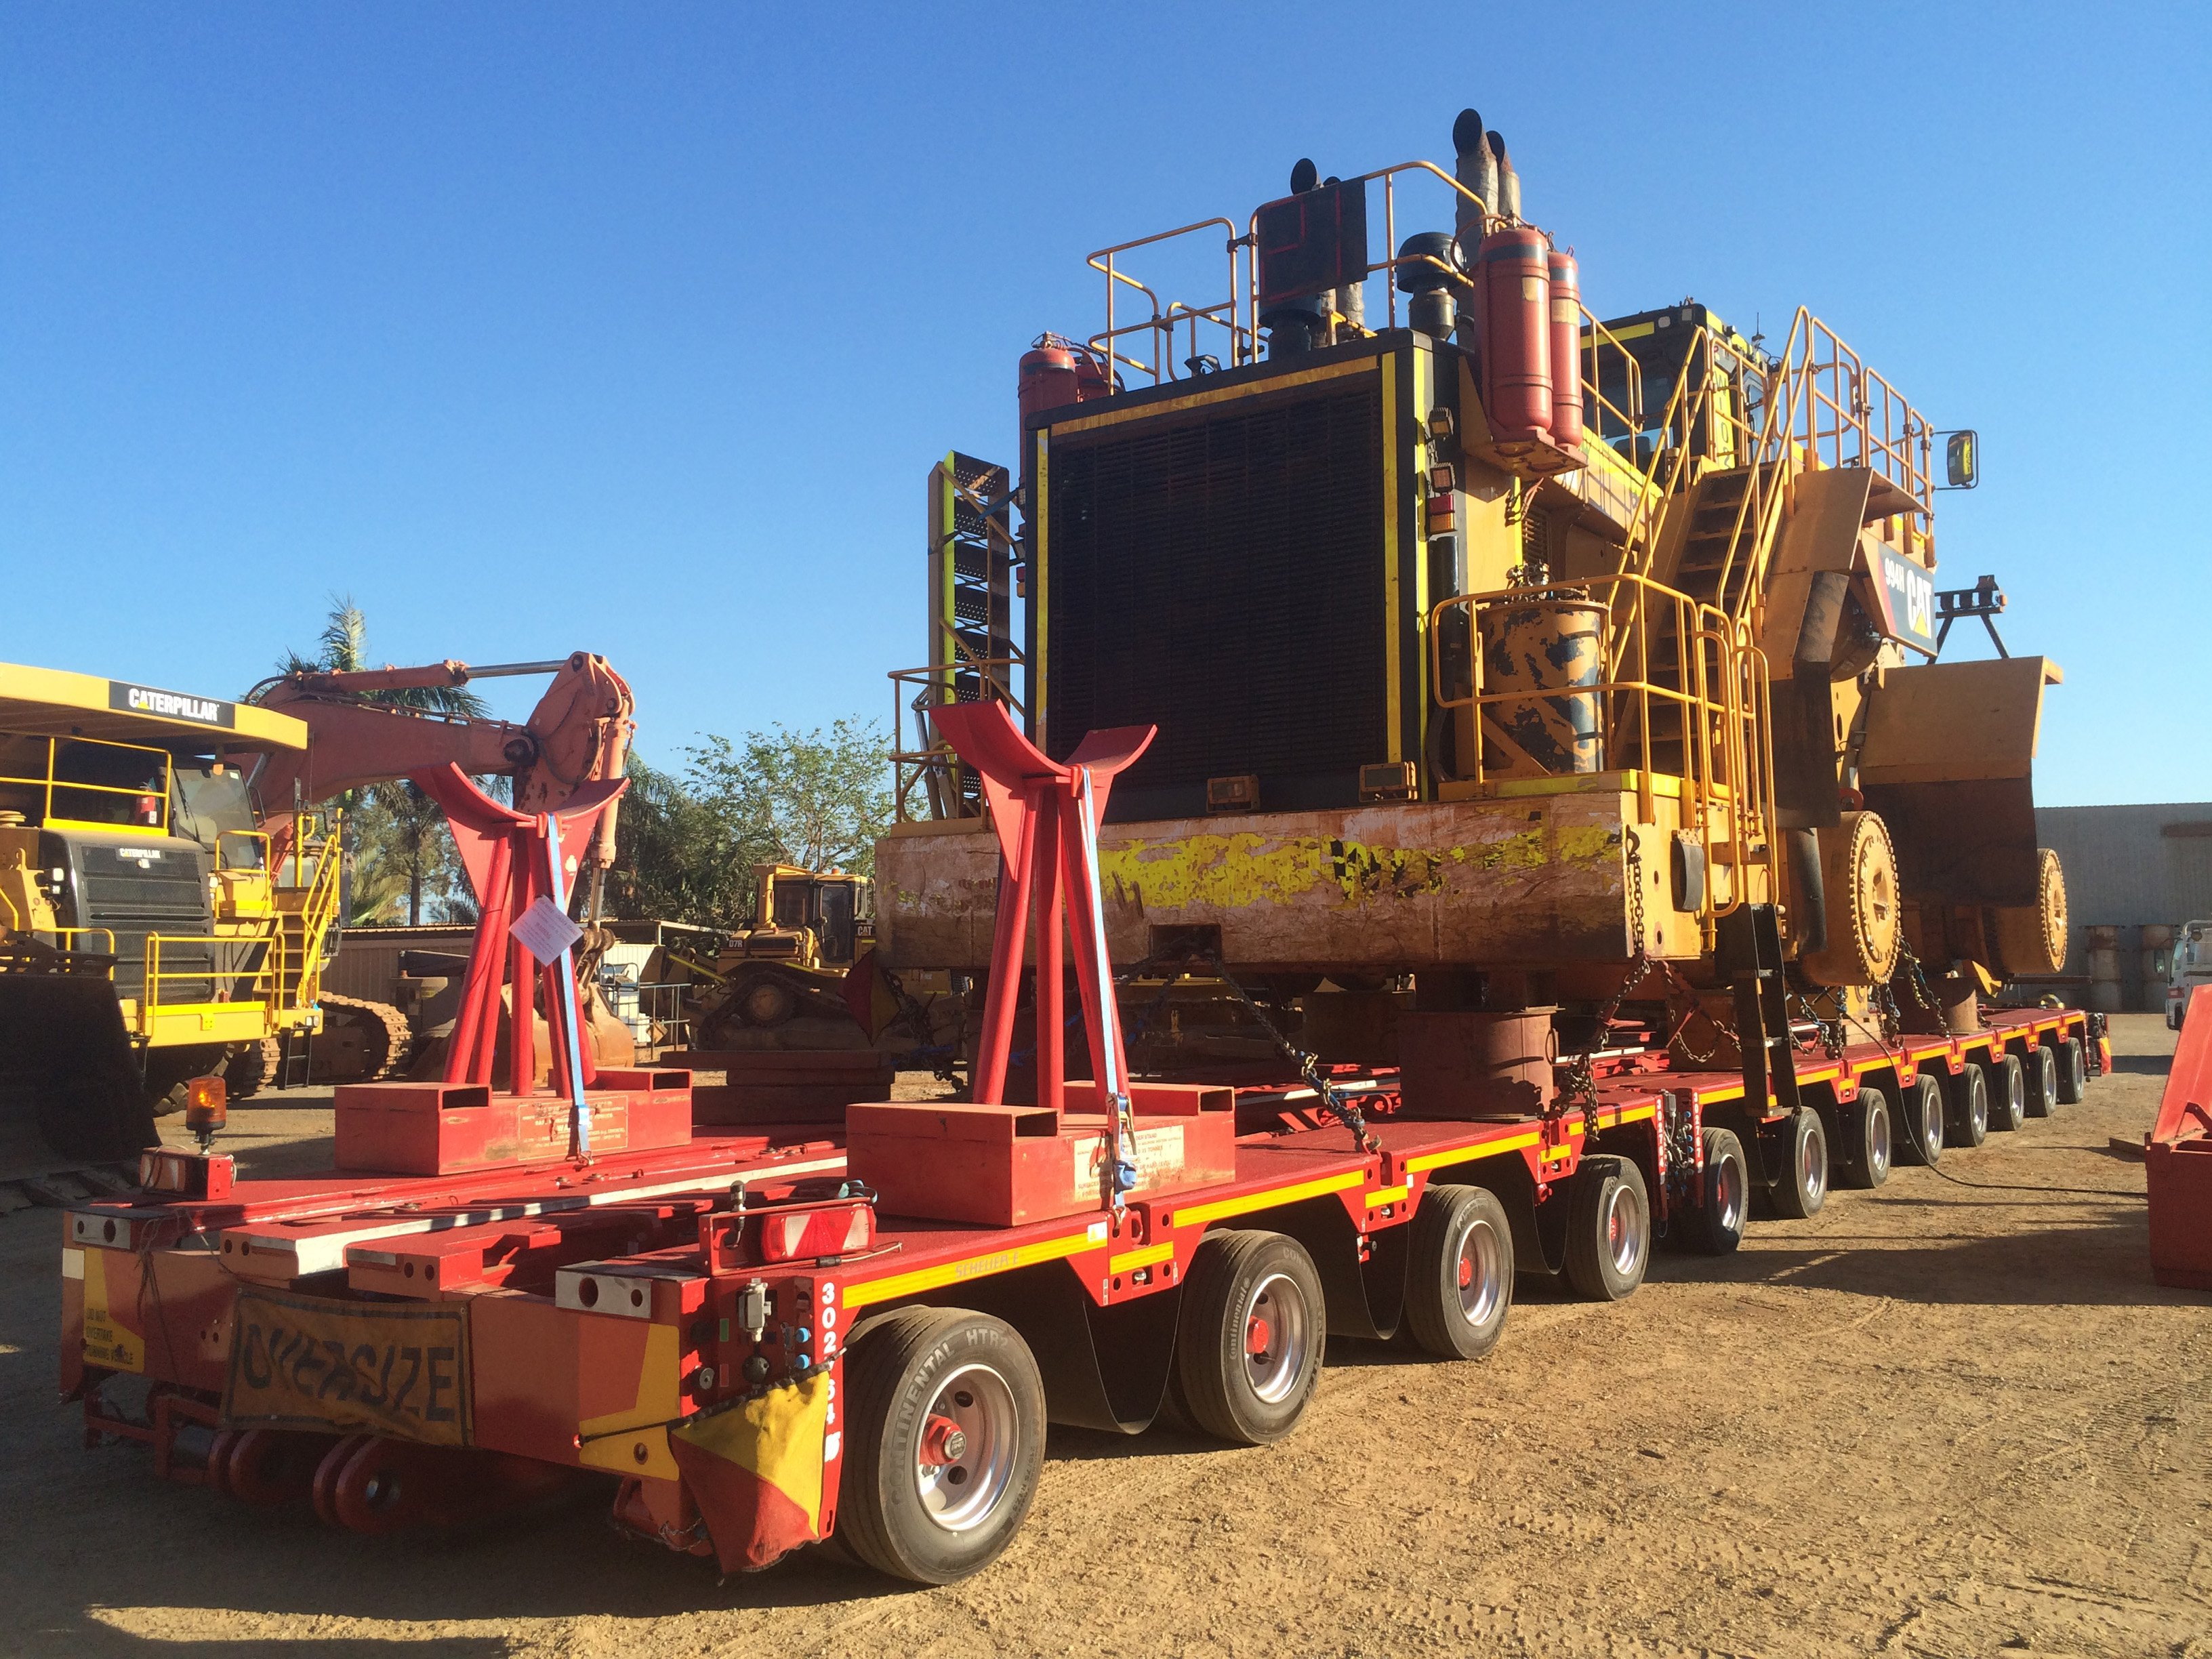 Transporting a CAT 994H loader from Port Hedland to Pilbara - Pilbara, Australia